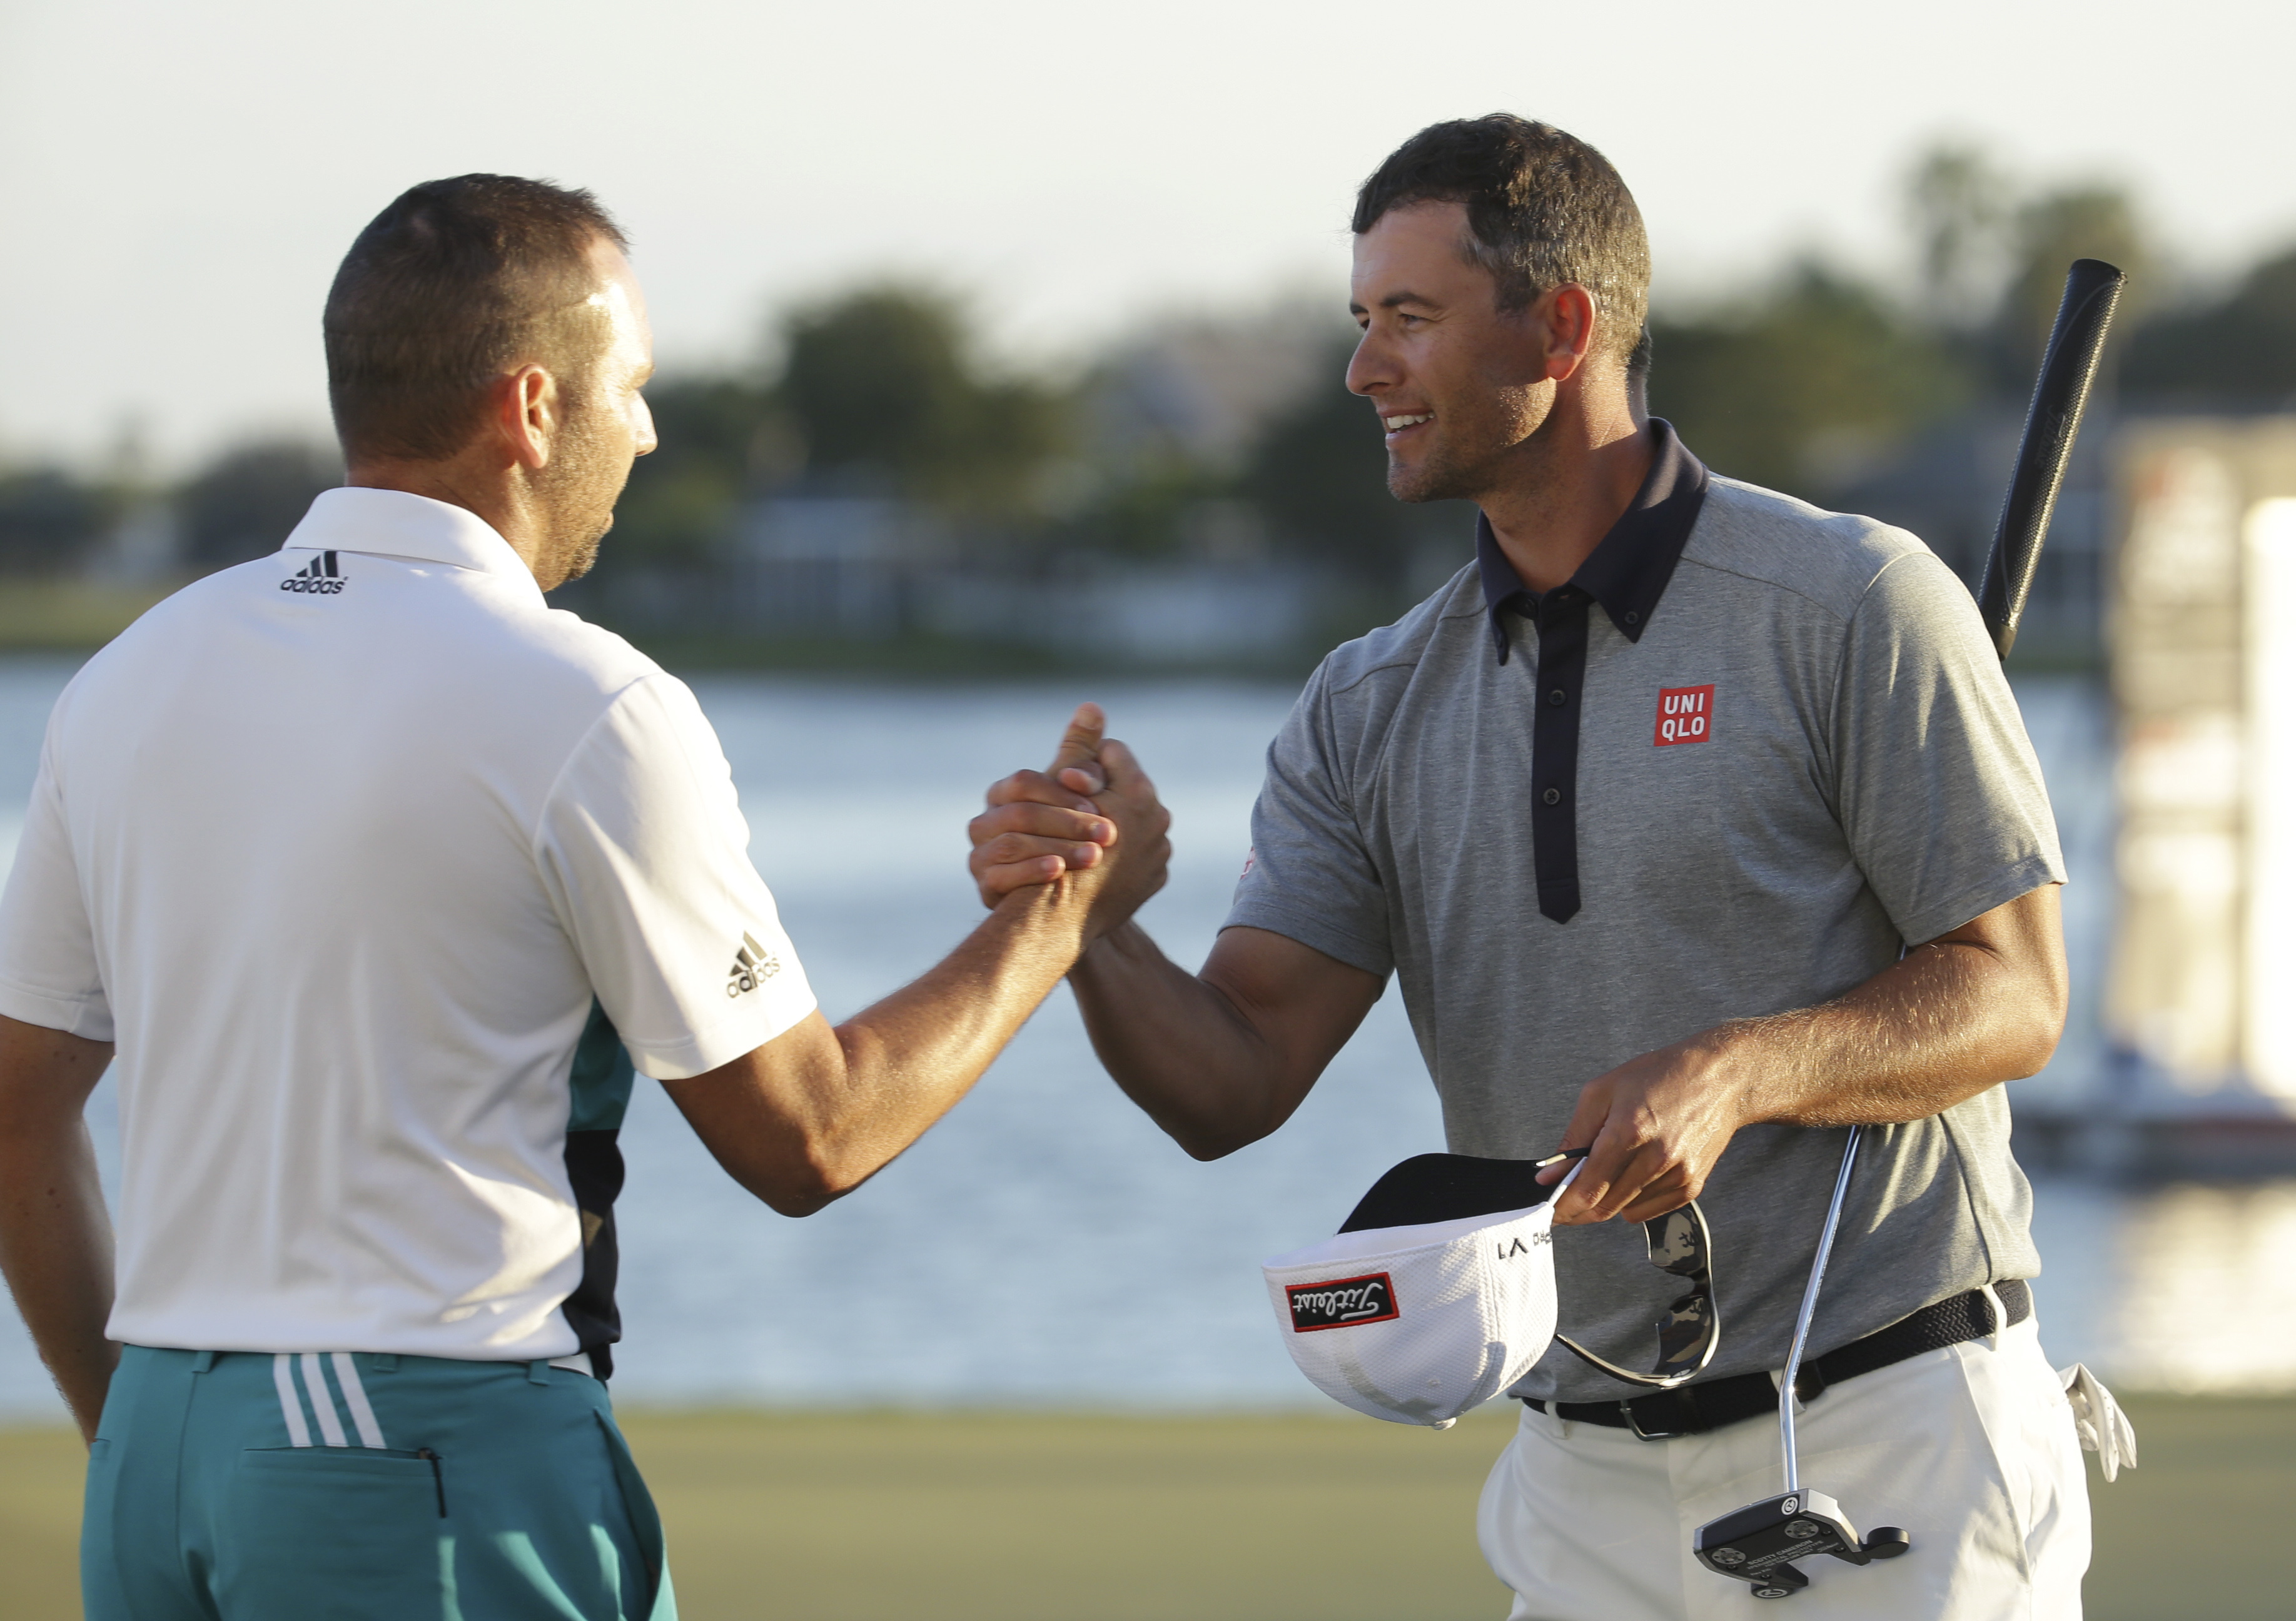 Sergio Garcia, of Spain, left, shakes hands with Adam Scott, of Australia, right, after the third round of the Honda Classic golf tournament, Saturday, Feb. 27, 2016, in Palm Beach Gardens, Fla. (AP Photo/Lynne Sladky)